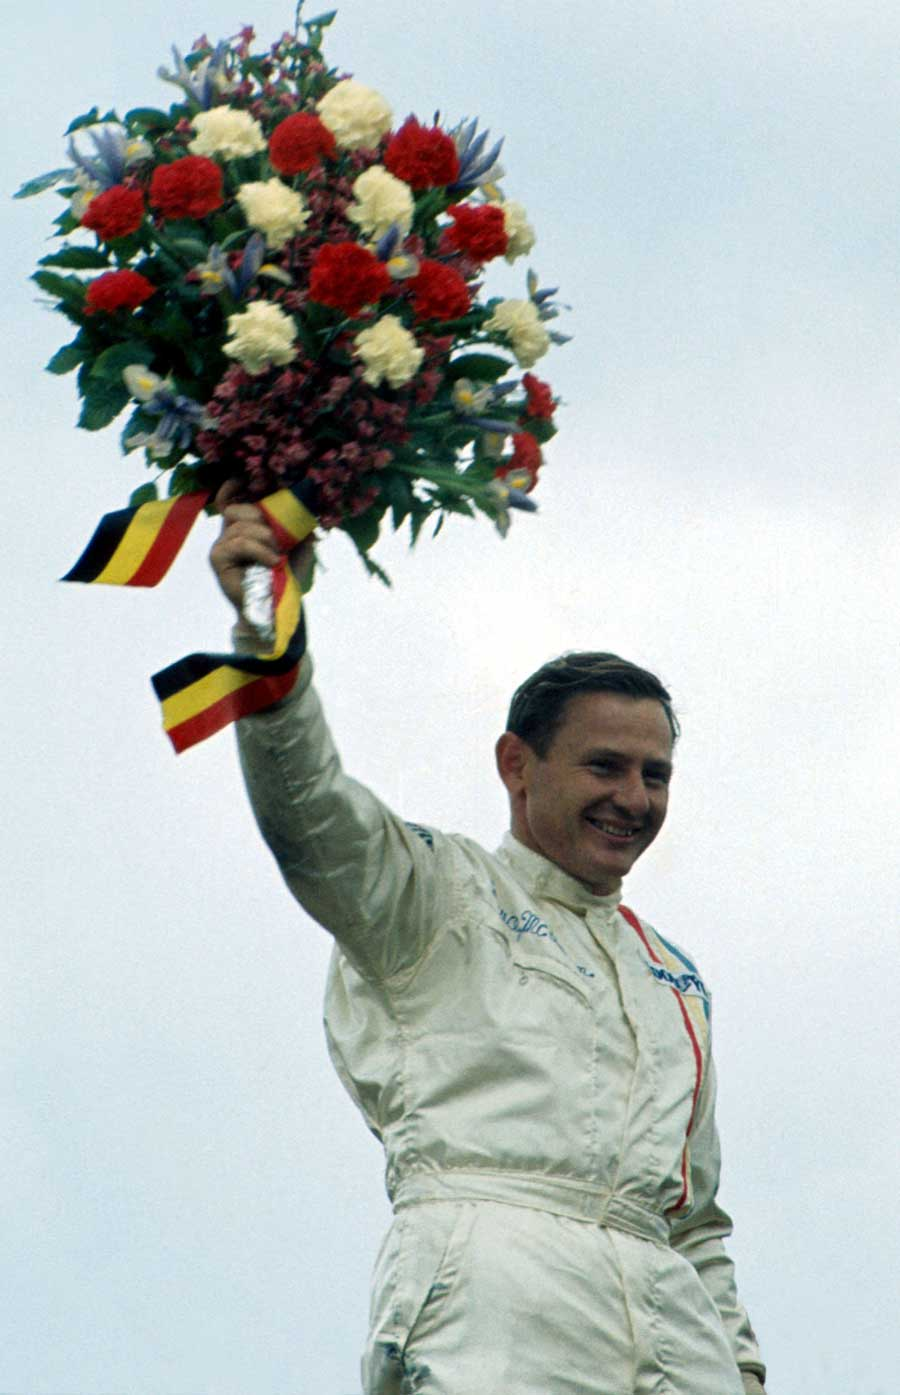 Bruce McLaren celebrates his and Team McLaren's first victory